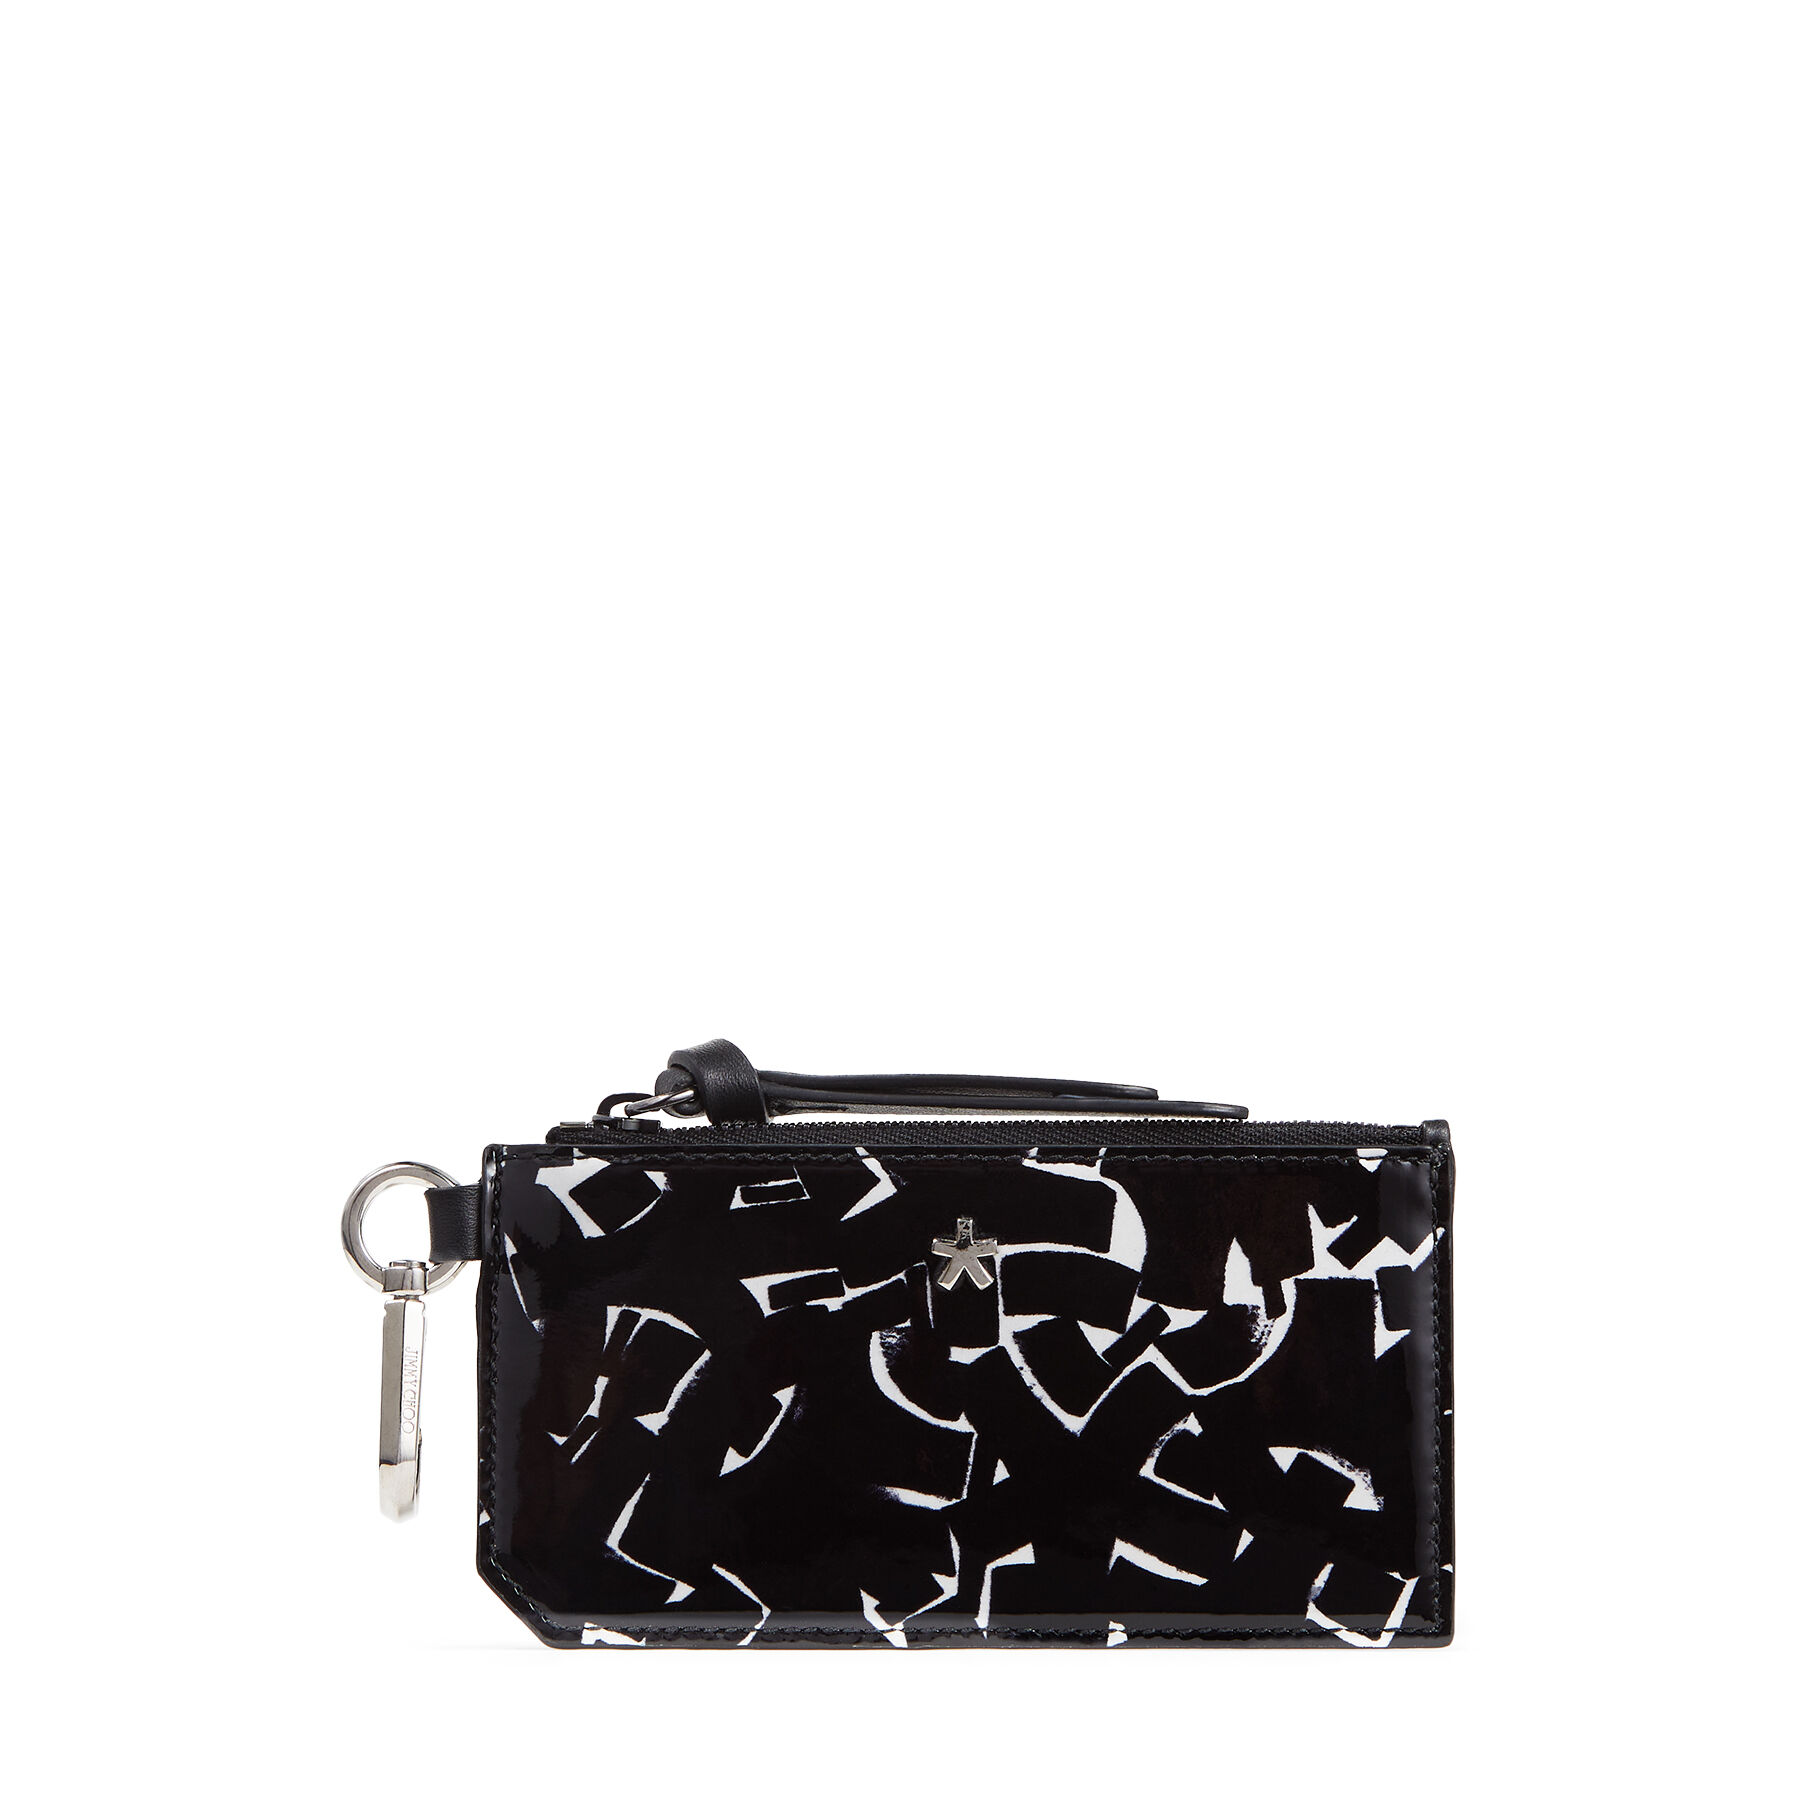 JC / ERIC HAZE LISE - Black and White Artwork Printed Patent Leather Pouch